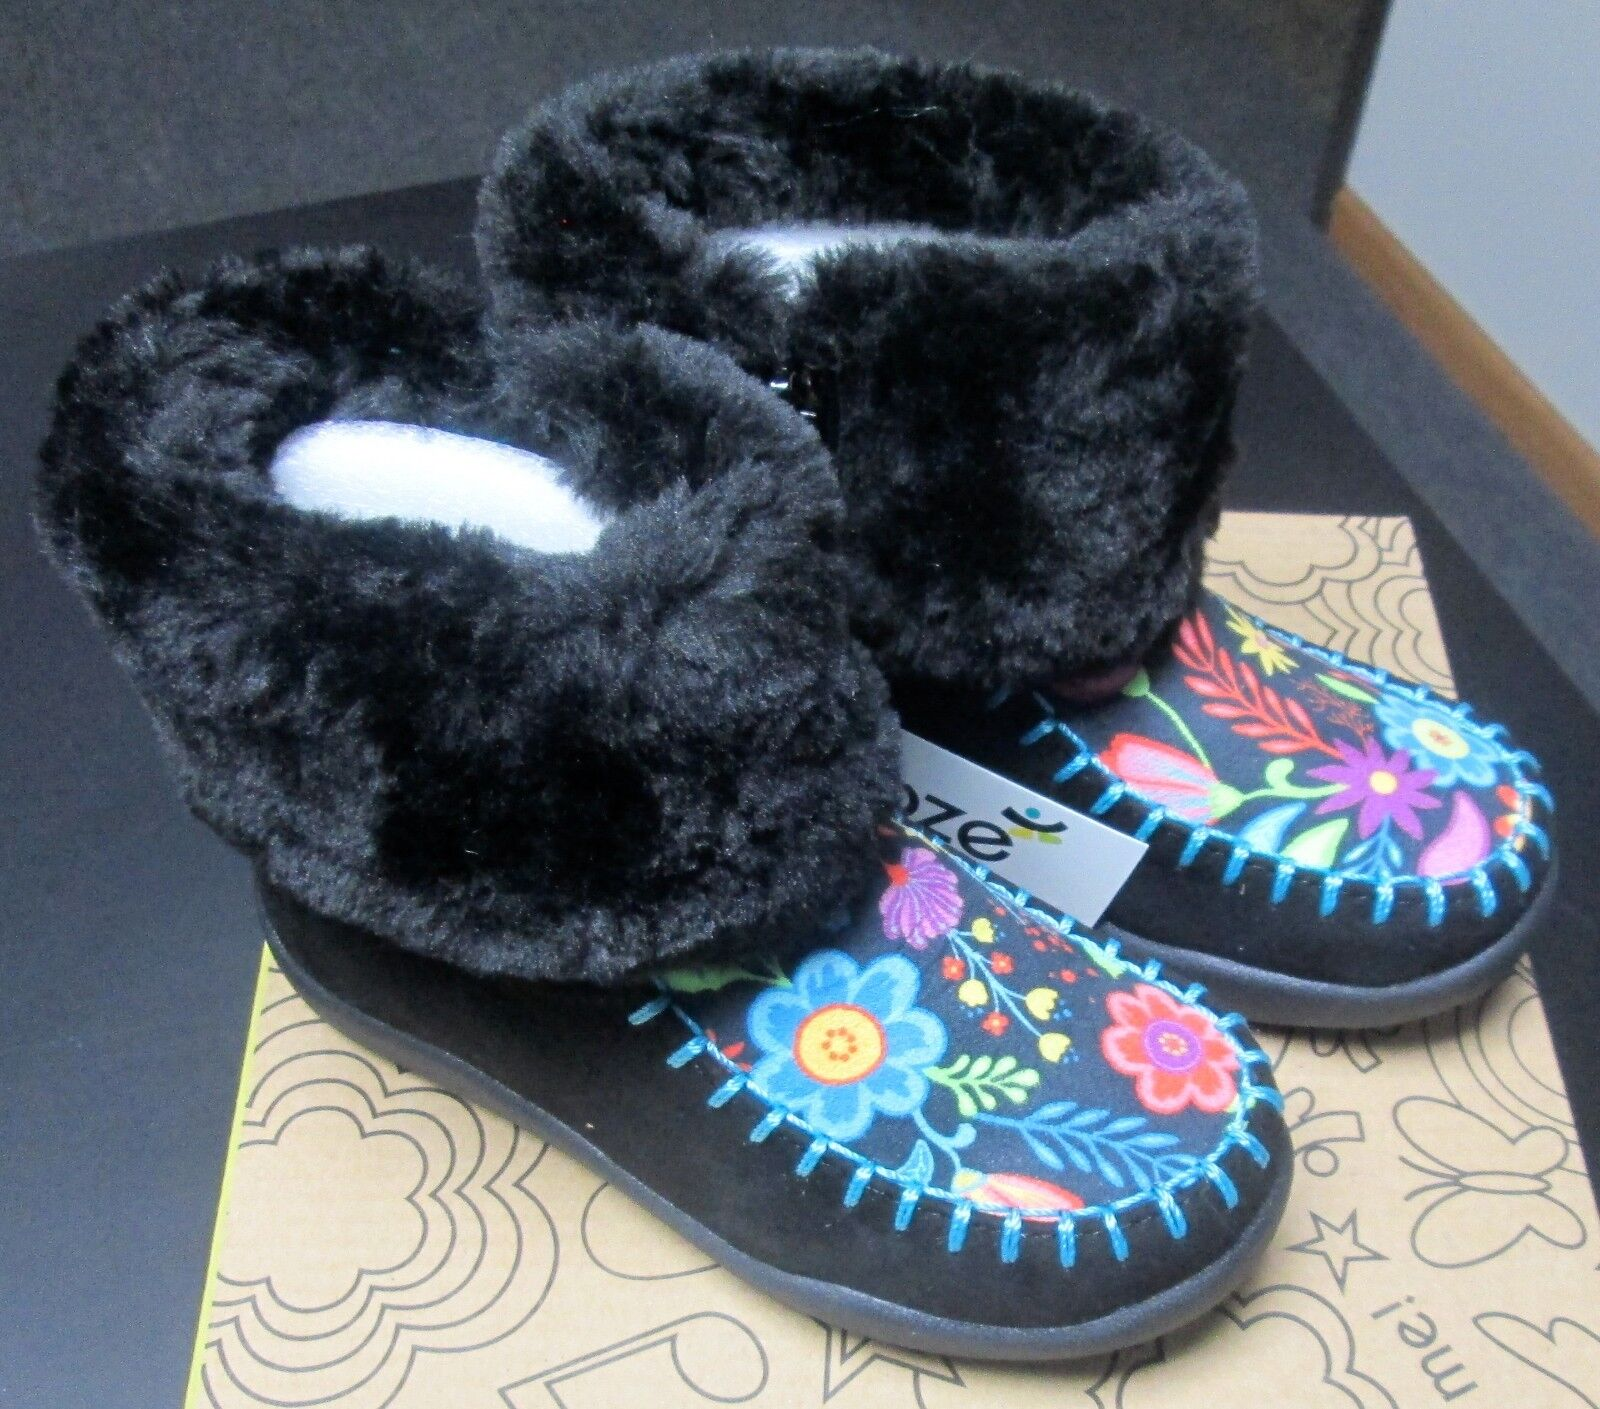 NEW TODDLER GIRL CHOOZE SHOES BLACK SUEDE/FUR TRIMMED BOOTS w/FLOWERS SZ 9